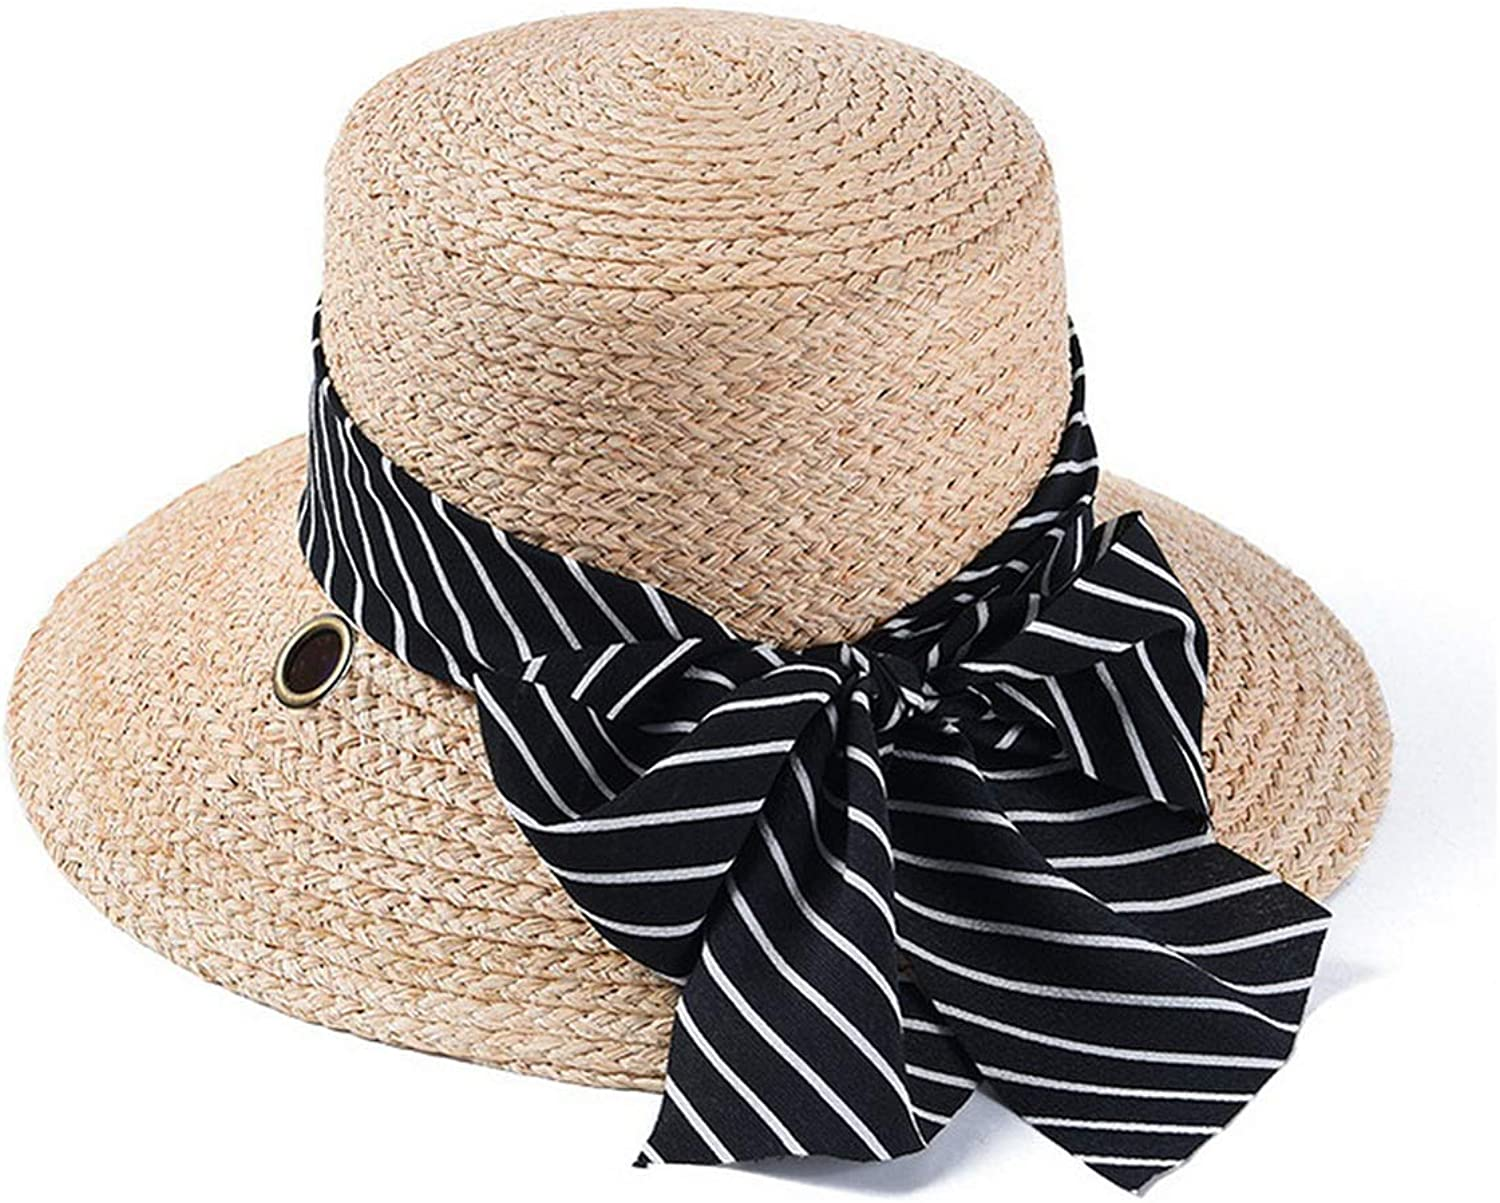 Cloche Straw Hat Female Summer Sun Hat Lady Women's Beach Vacation HOL,